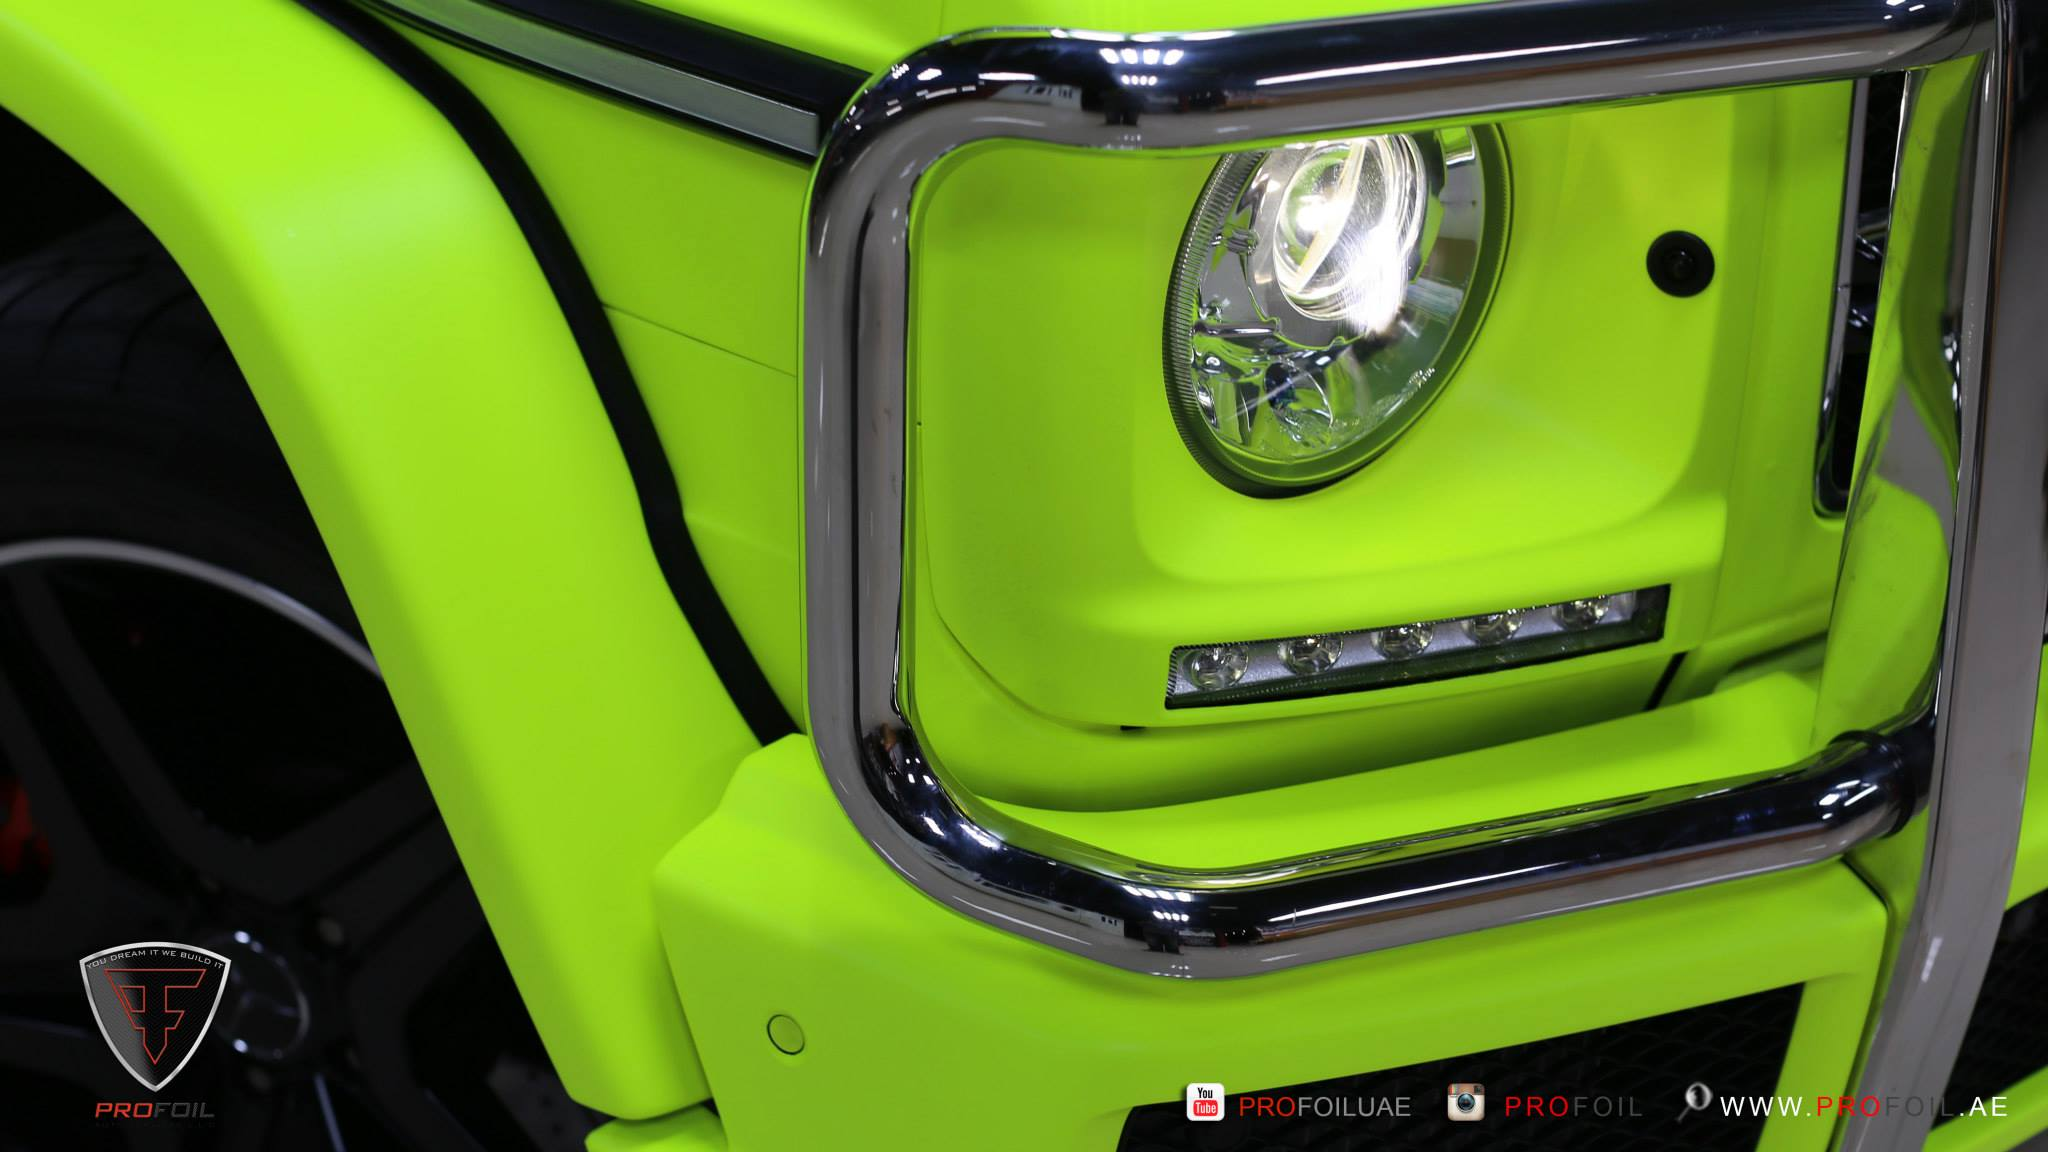 G63 Amg Gets Neon Yellow Wrap From Profoil Video